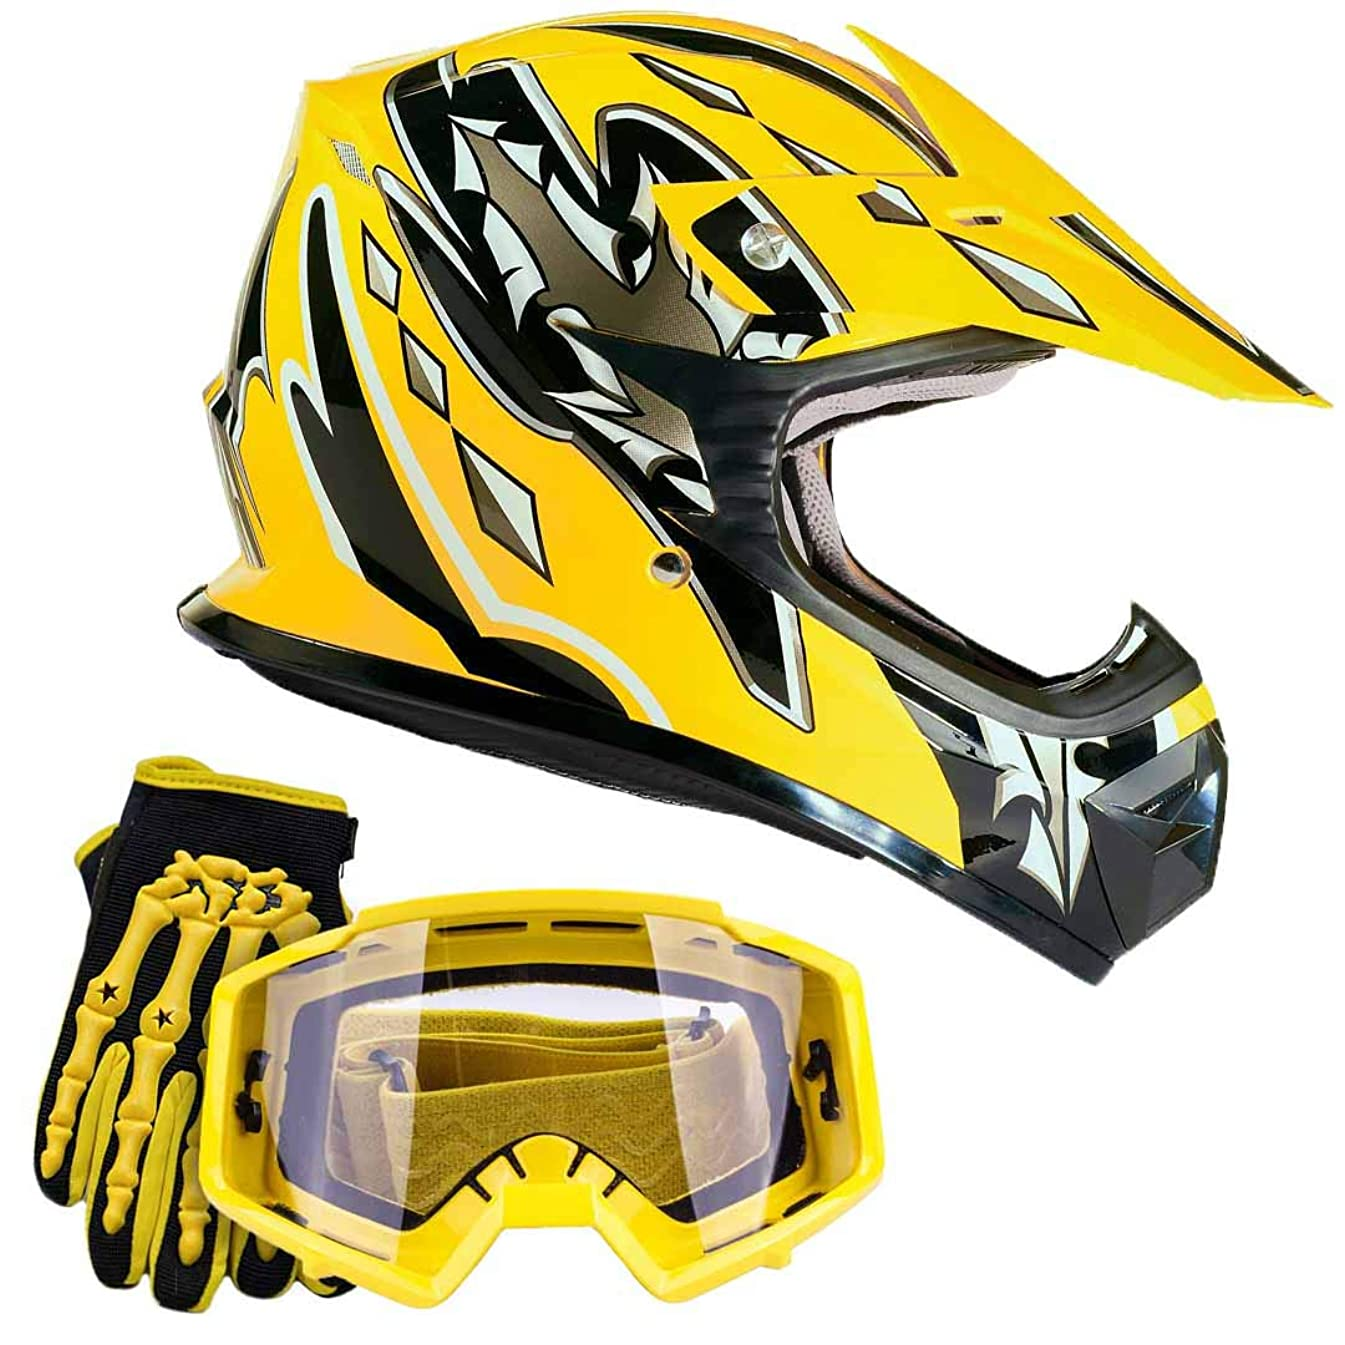 Youth Kids Offroad Gear Combo Helmet Gloves Goggles DOT Motocross ATV Dirt Bike MX Motorcycle Yellow, Large